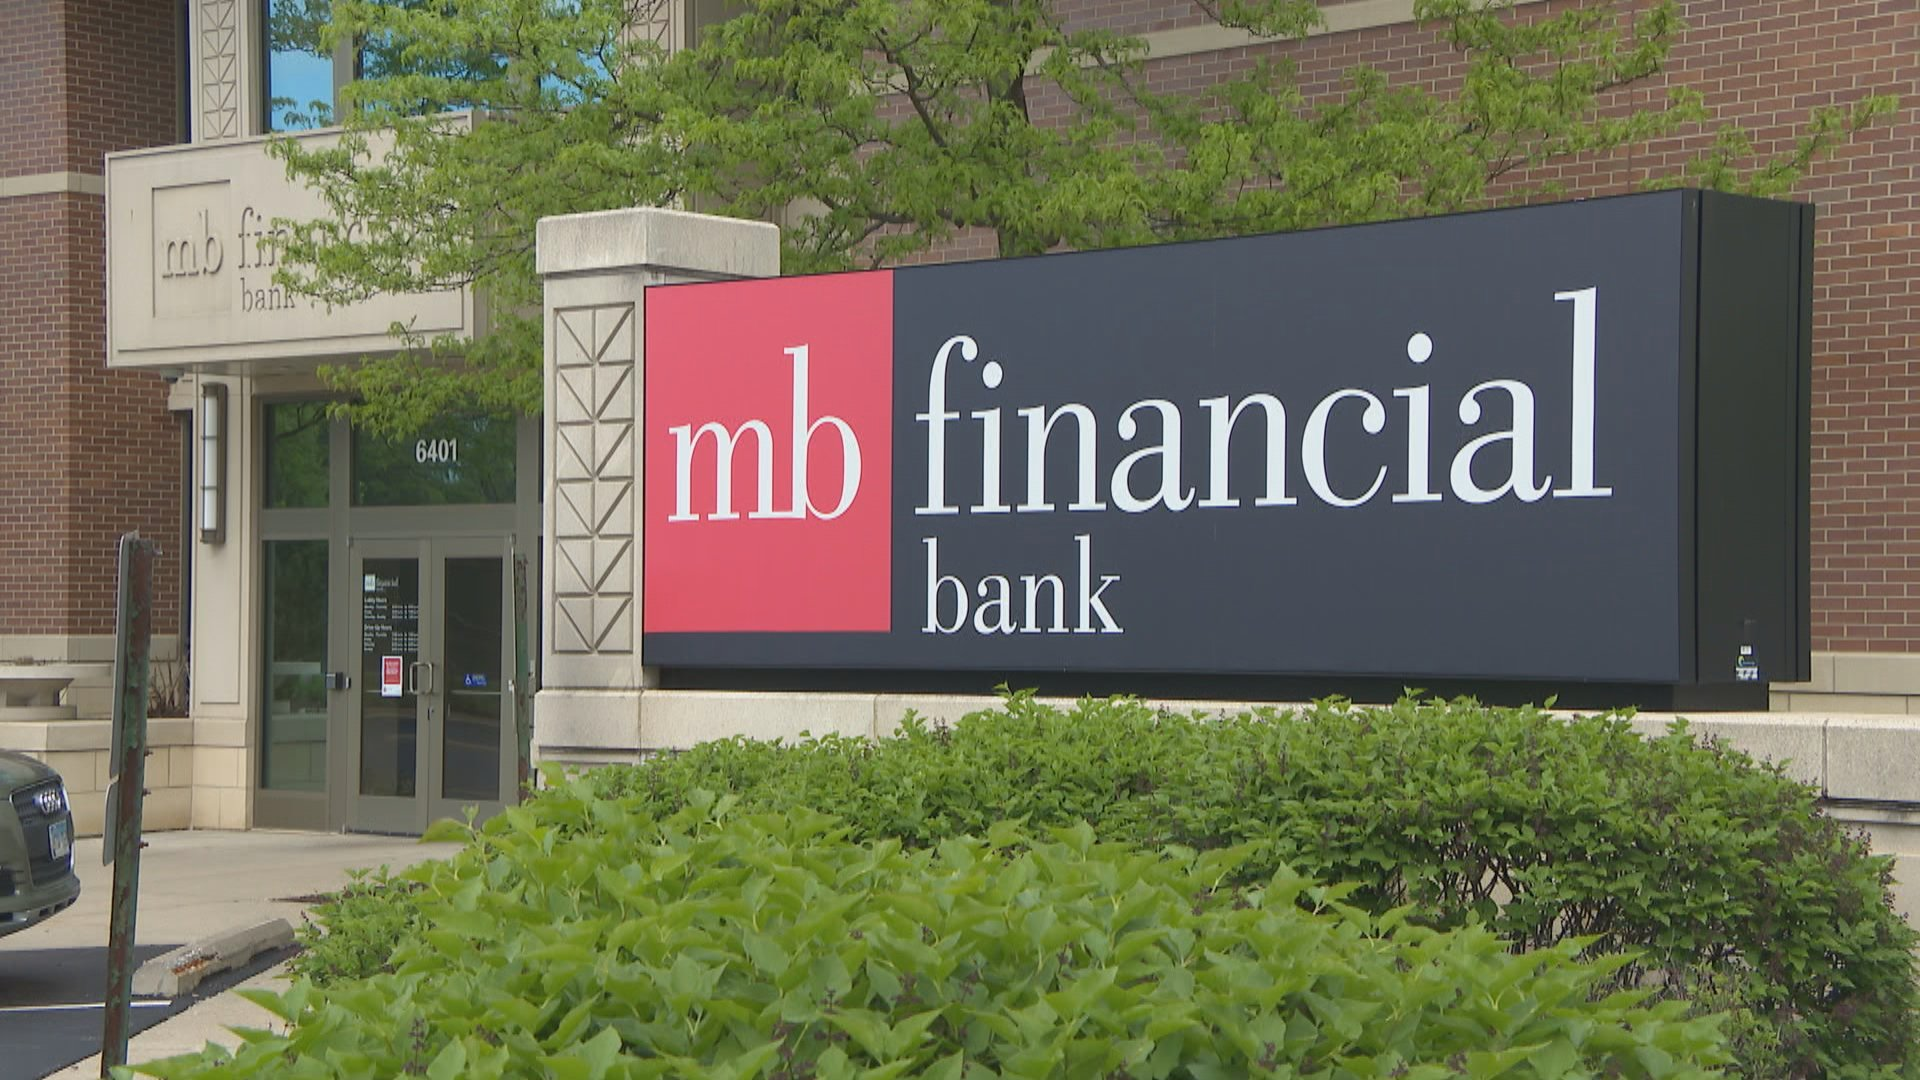 mb financial bank branches